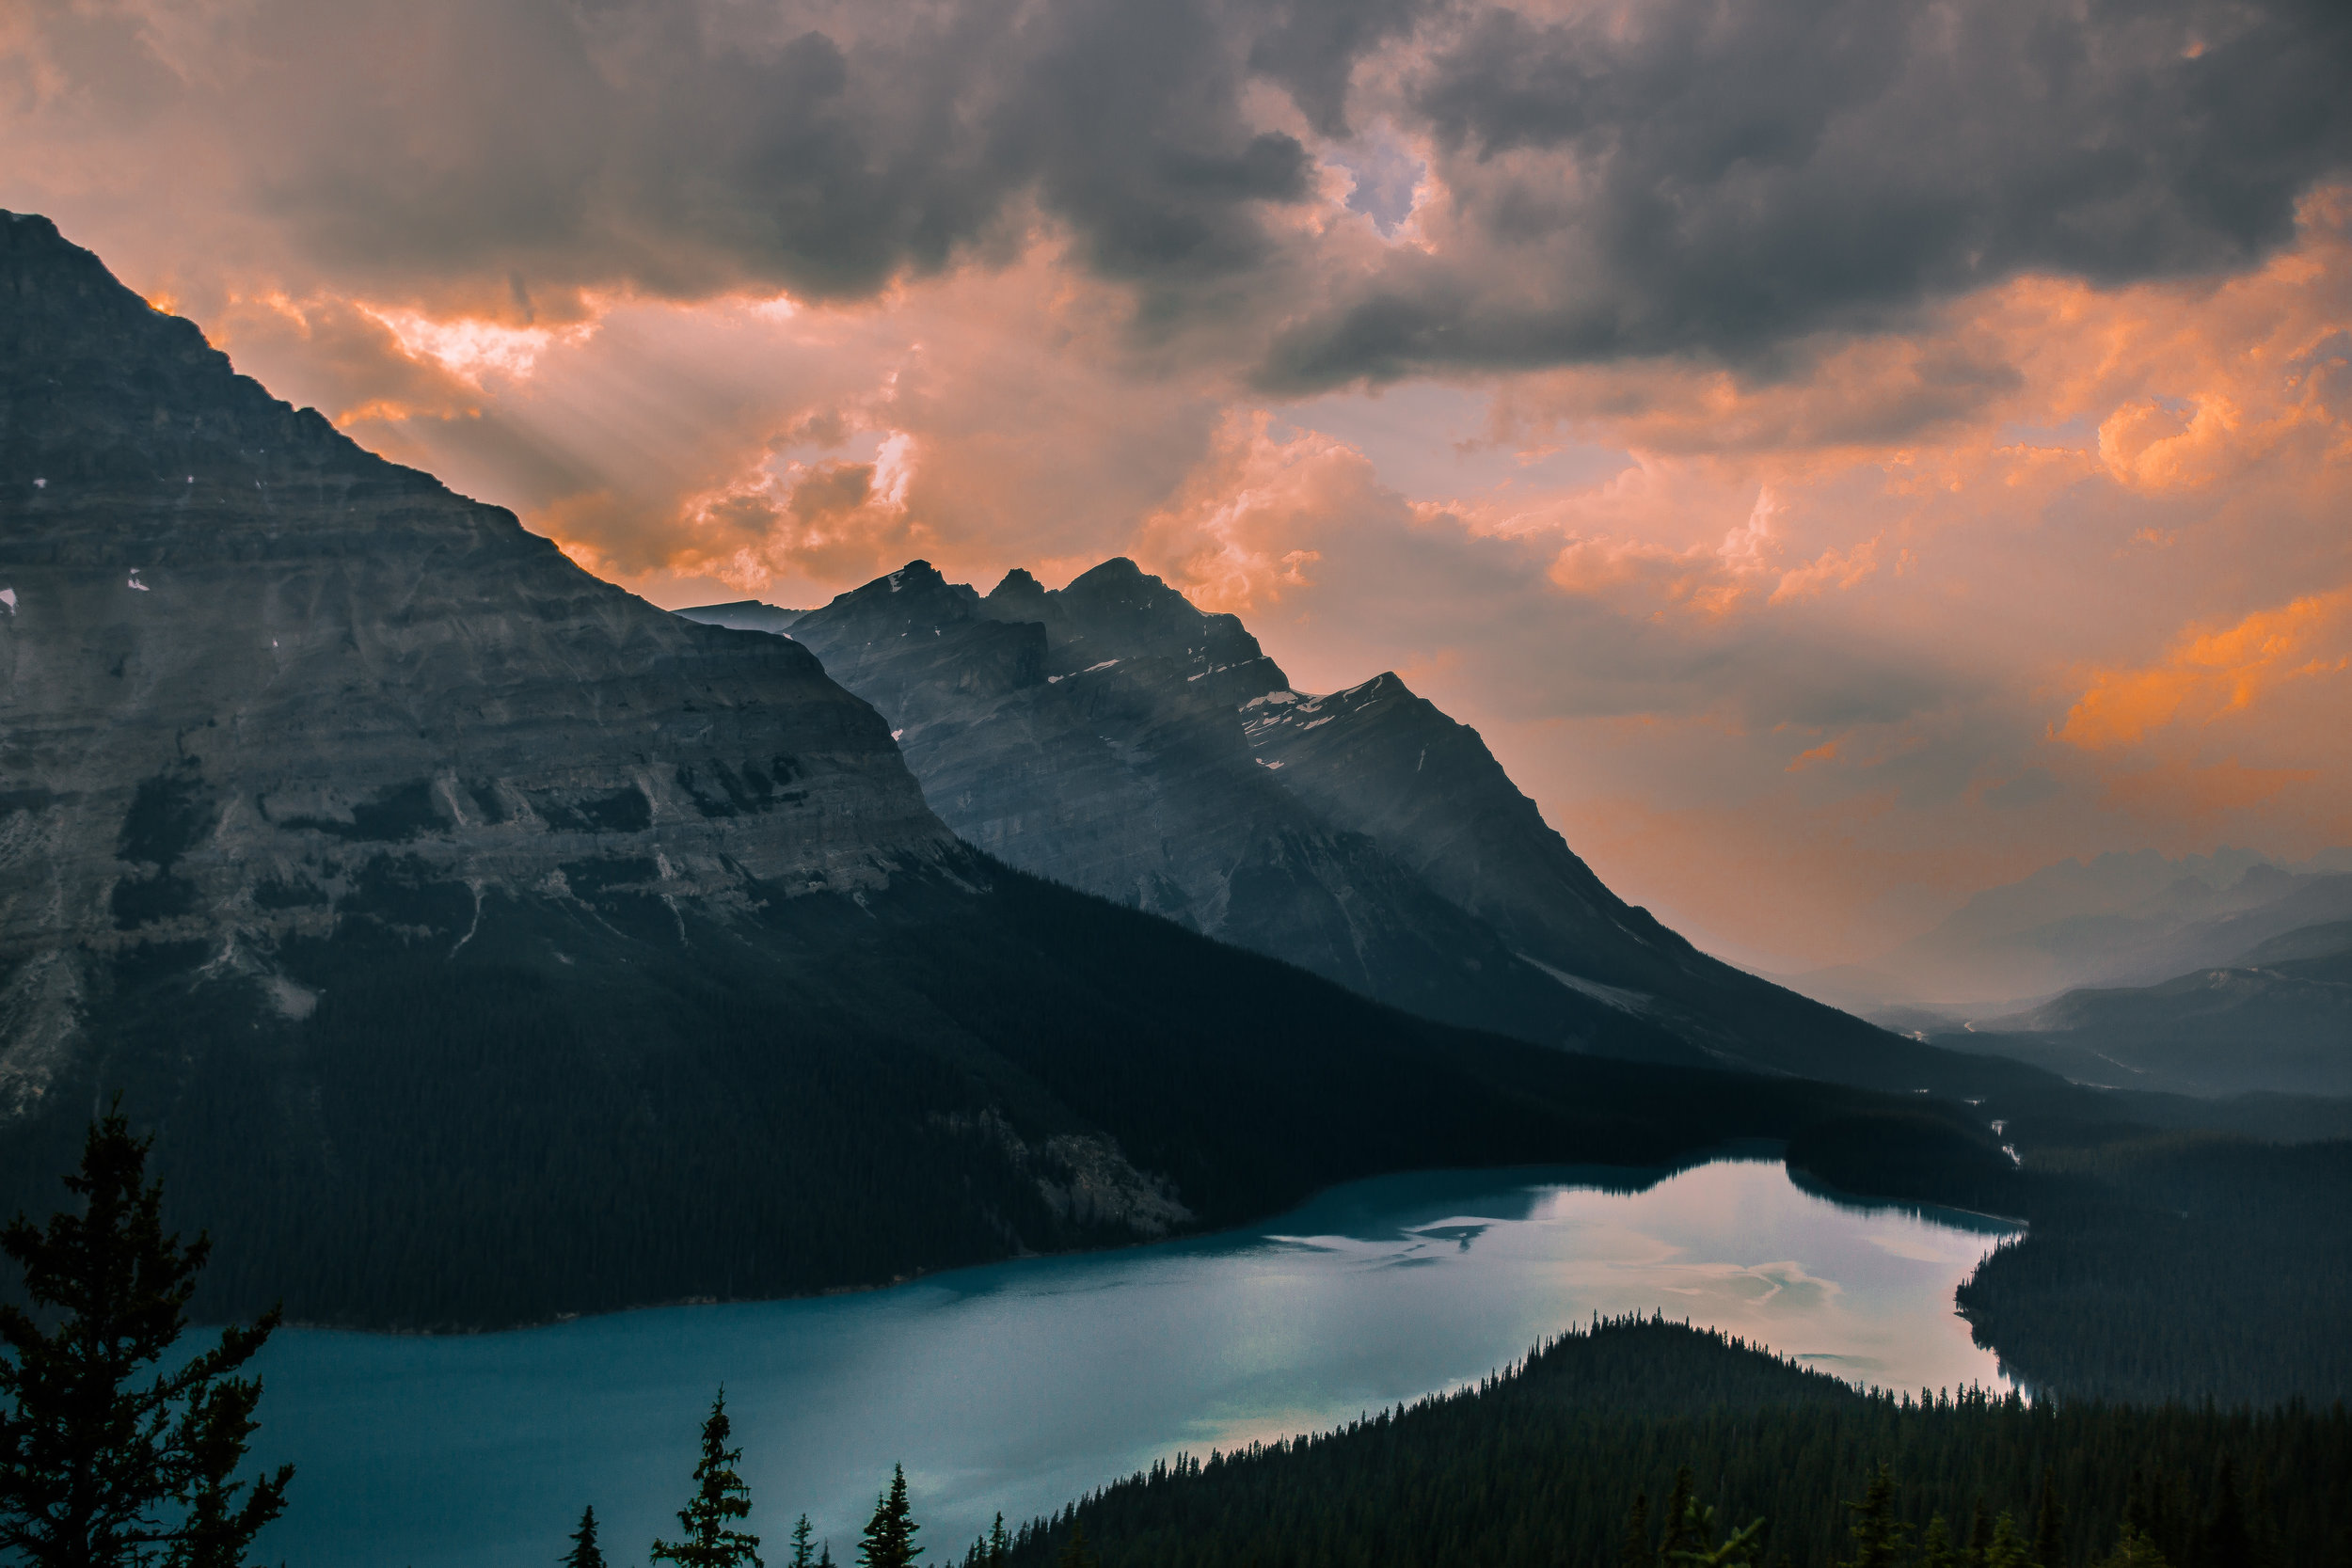 nicole-daacke-photography-banff-national-park-yoho-jasper-canada-parks-alberta-landscape-photographer-canadian-rockies-elopement-photographer-kananaskis-landscape-photos-5036.jpg